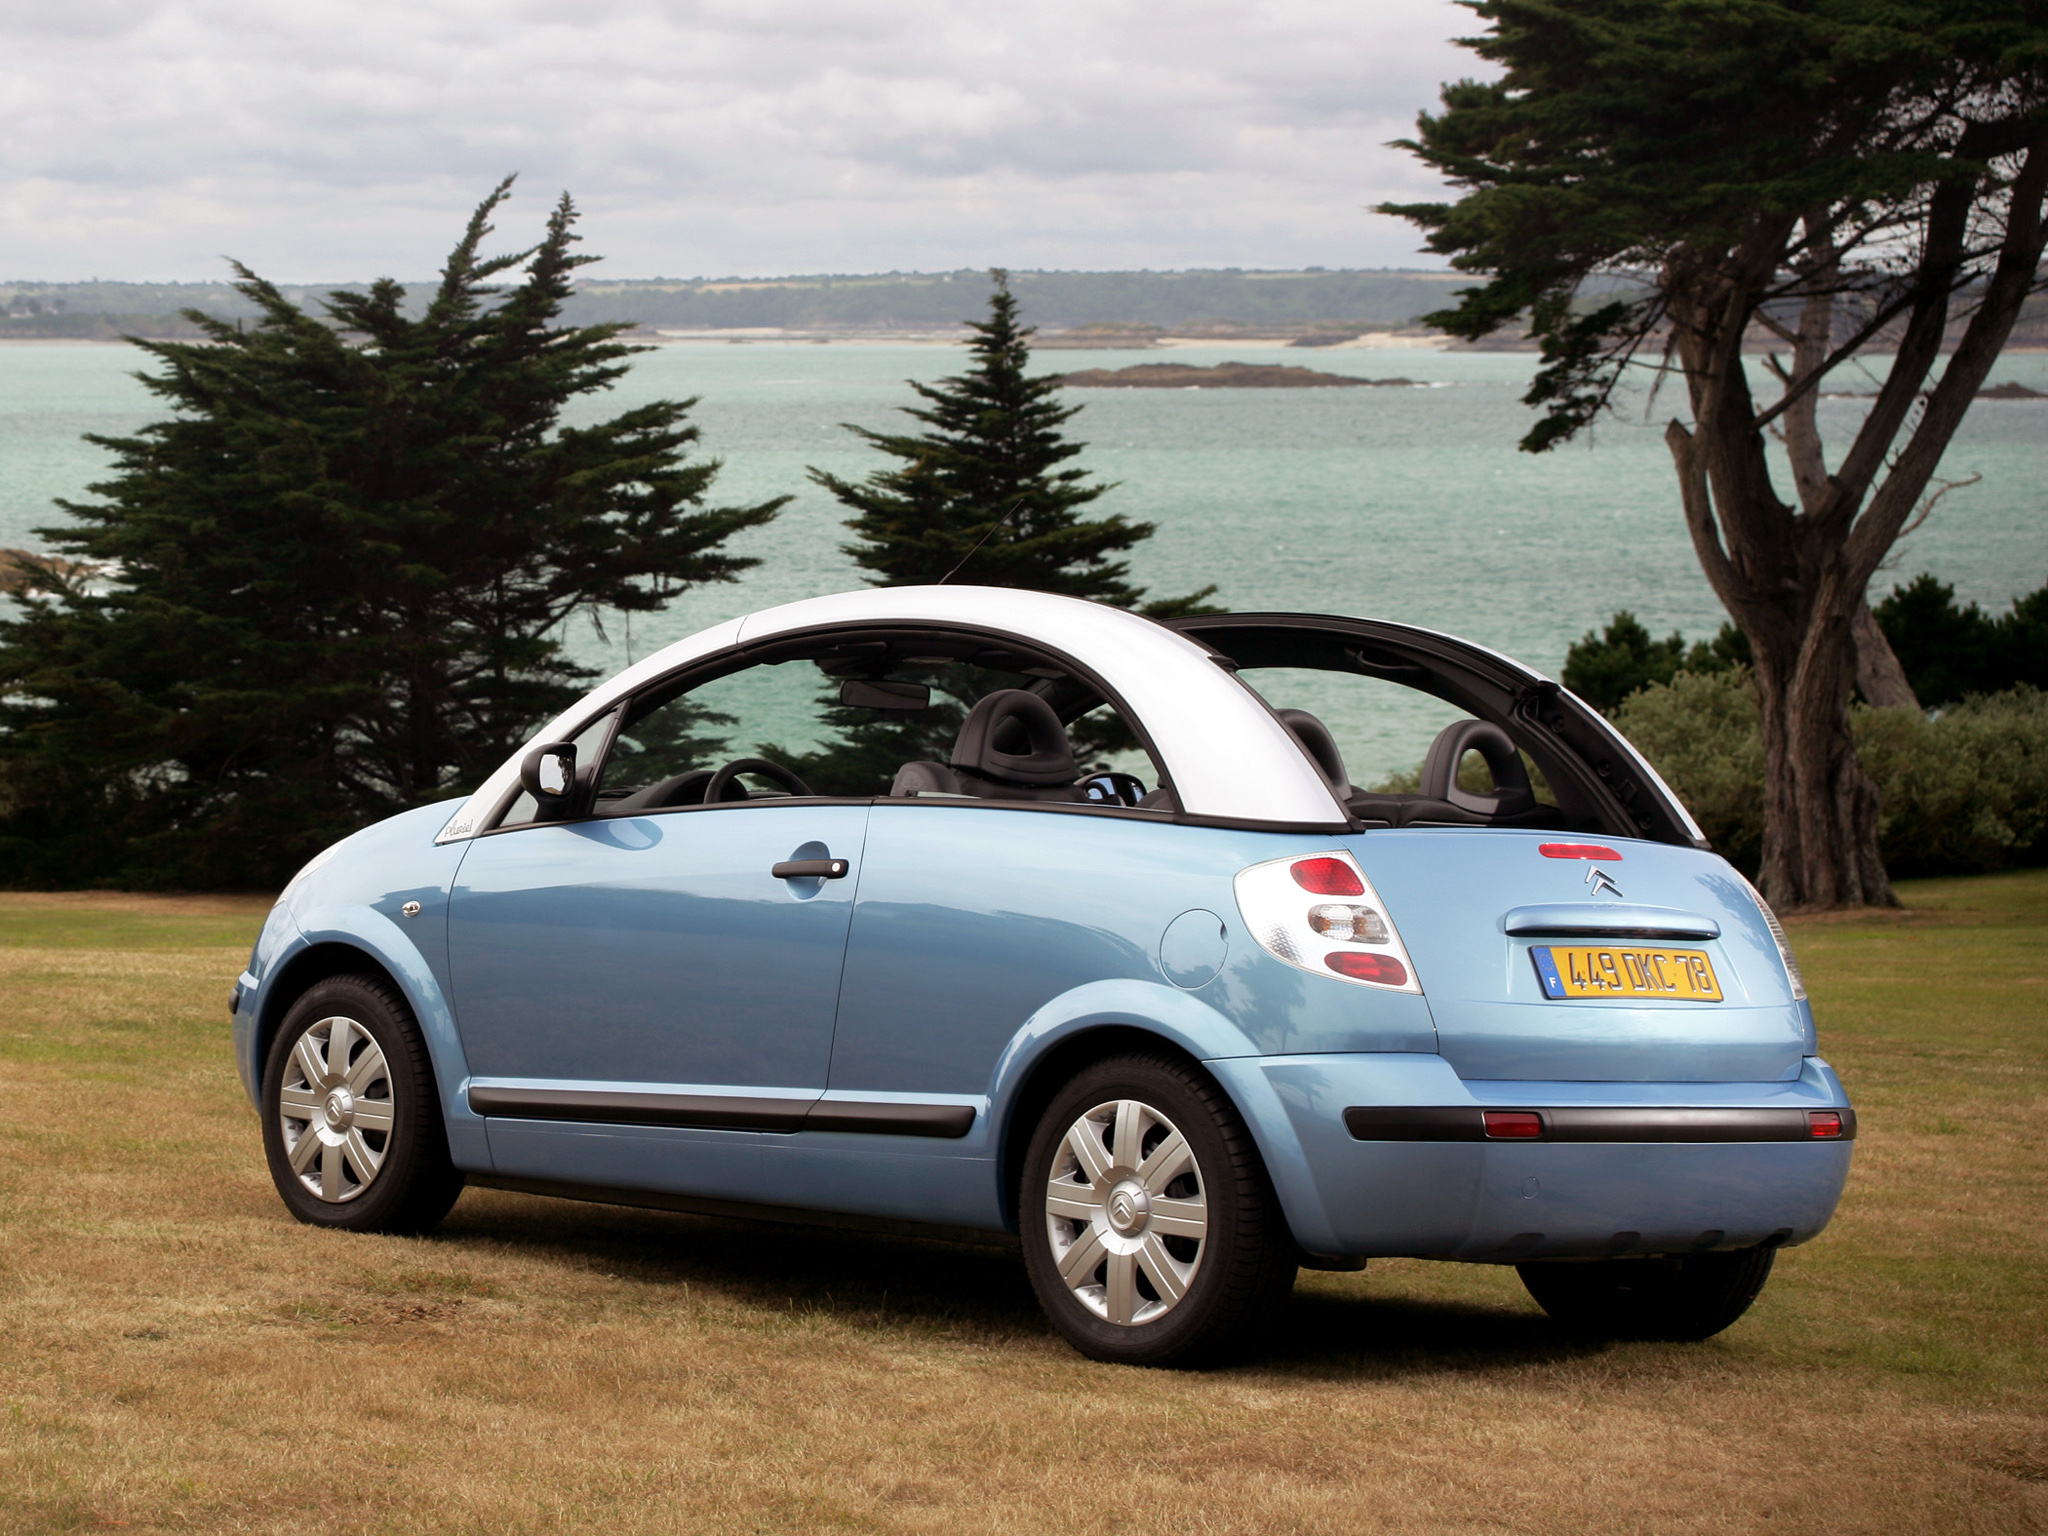 2003 Citroen C3 Pluriel Convertible 2-door